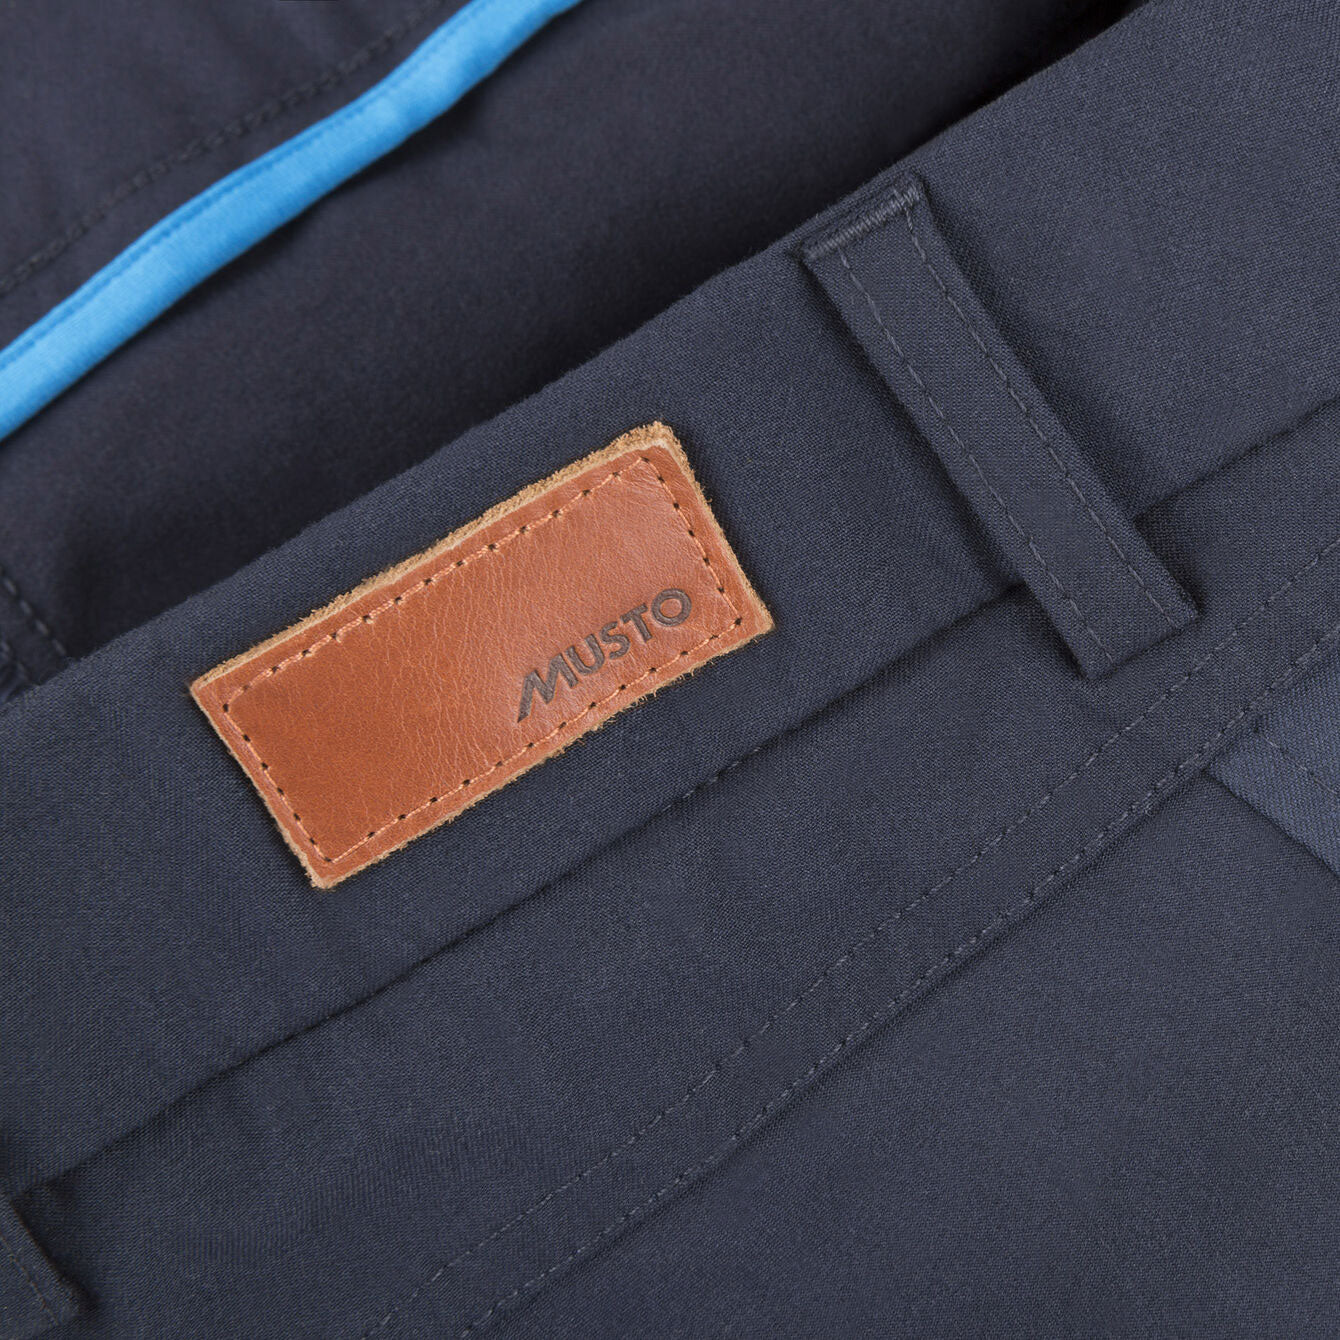 Leather tab musto logo